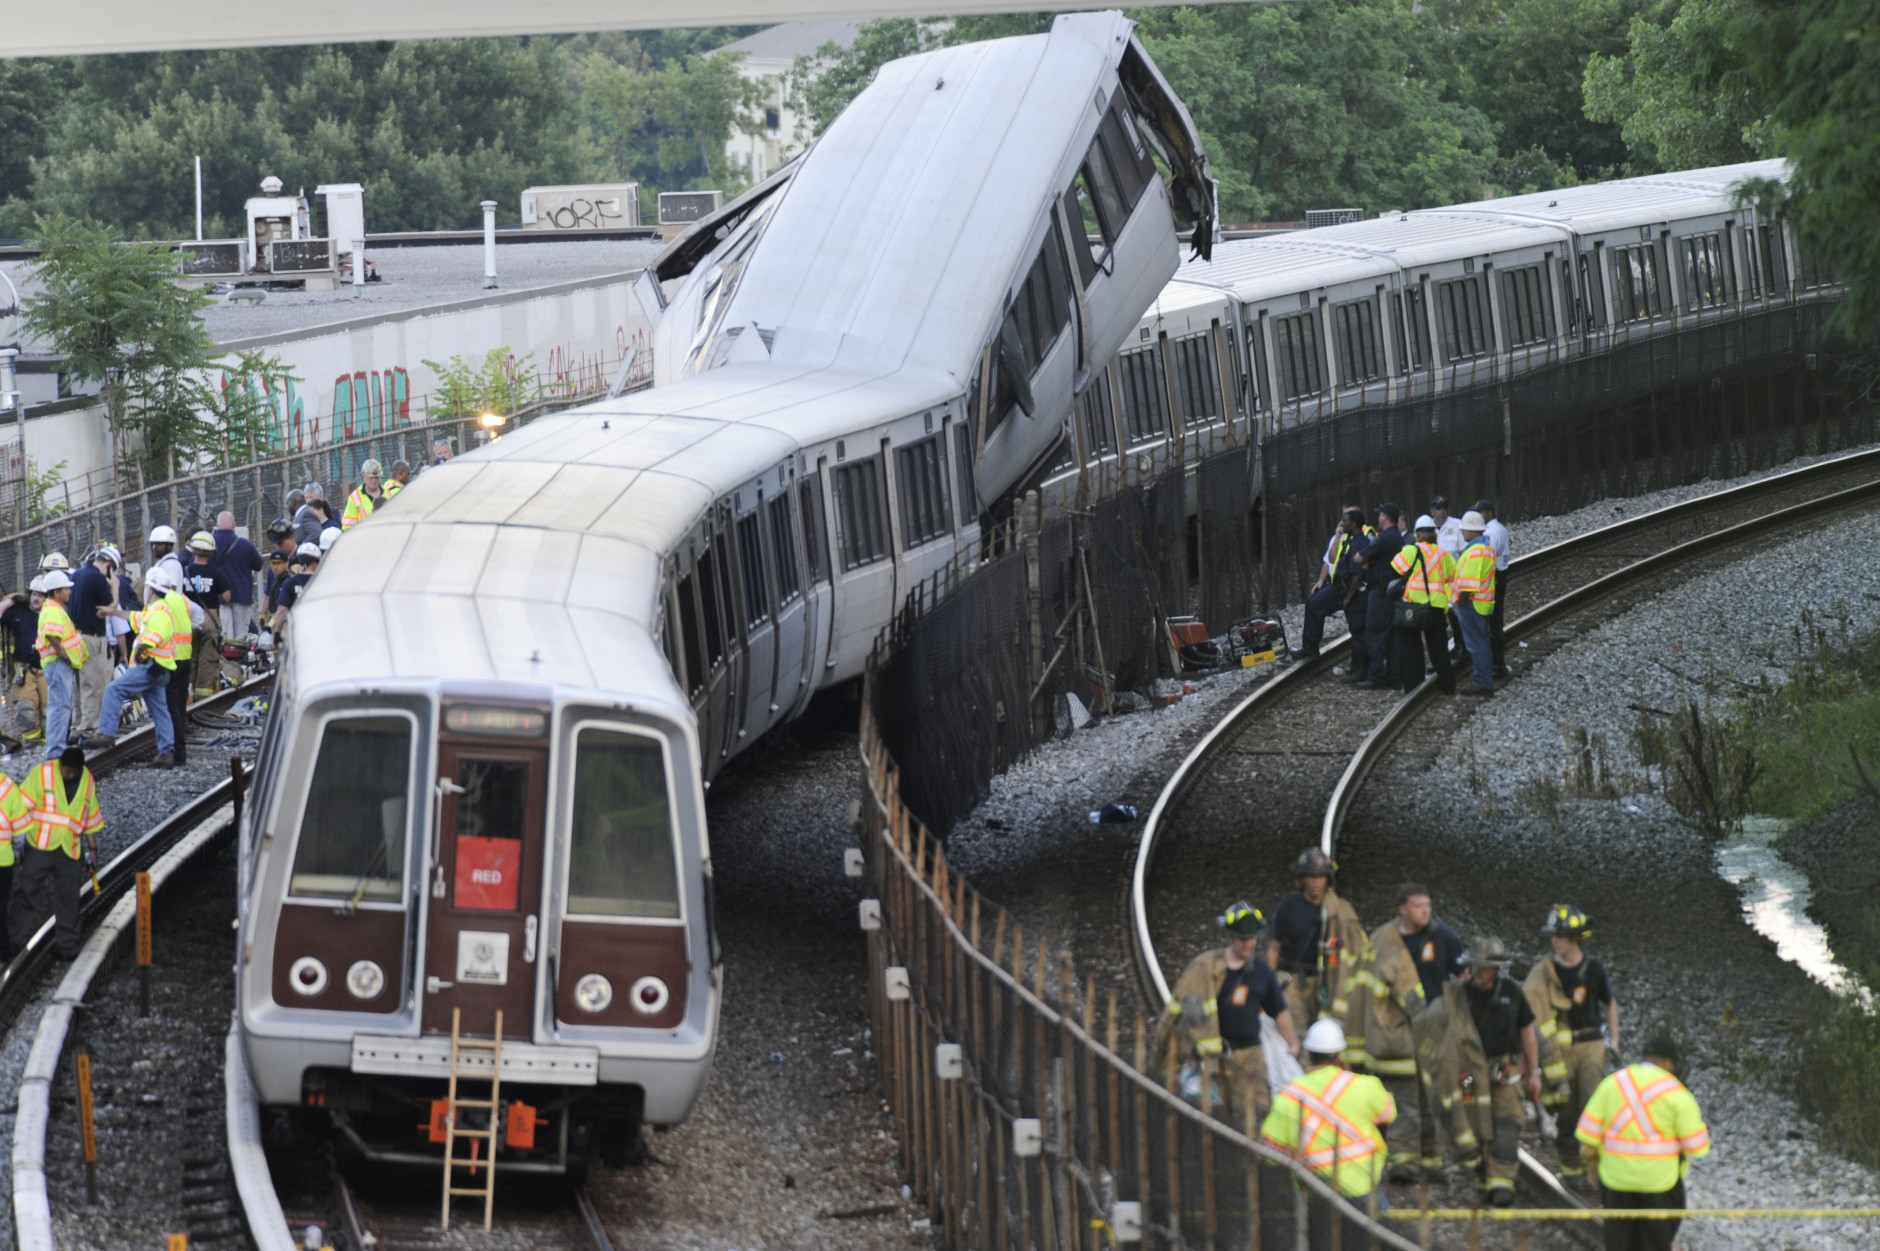 District of Columbia Fire and Emergency workers at the site of a rush-hour collision between two Metro transit trains in northeast Washington, D.C. Monday, June 22, 2009. (AP Photo/Pablo Martinez Monsivais)